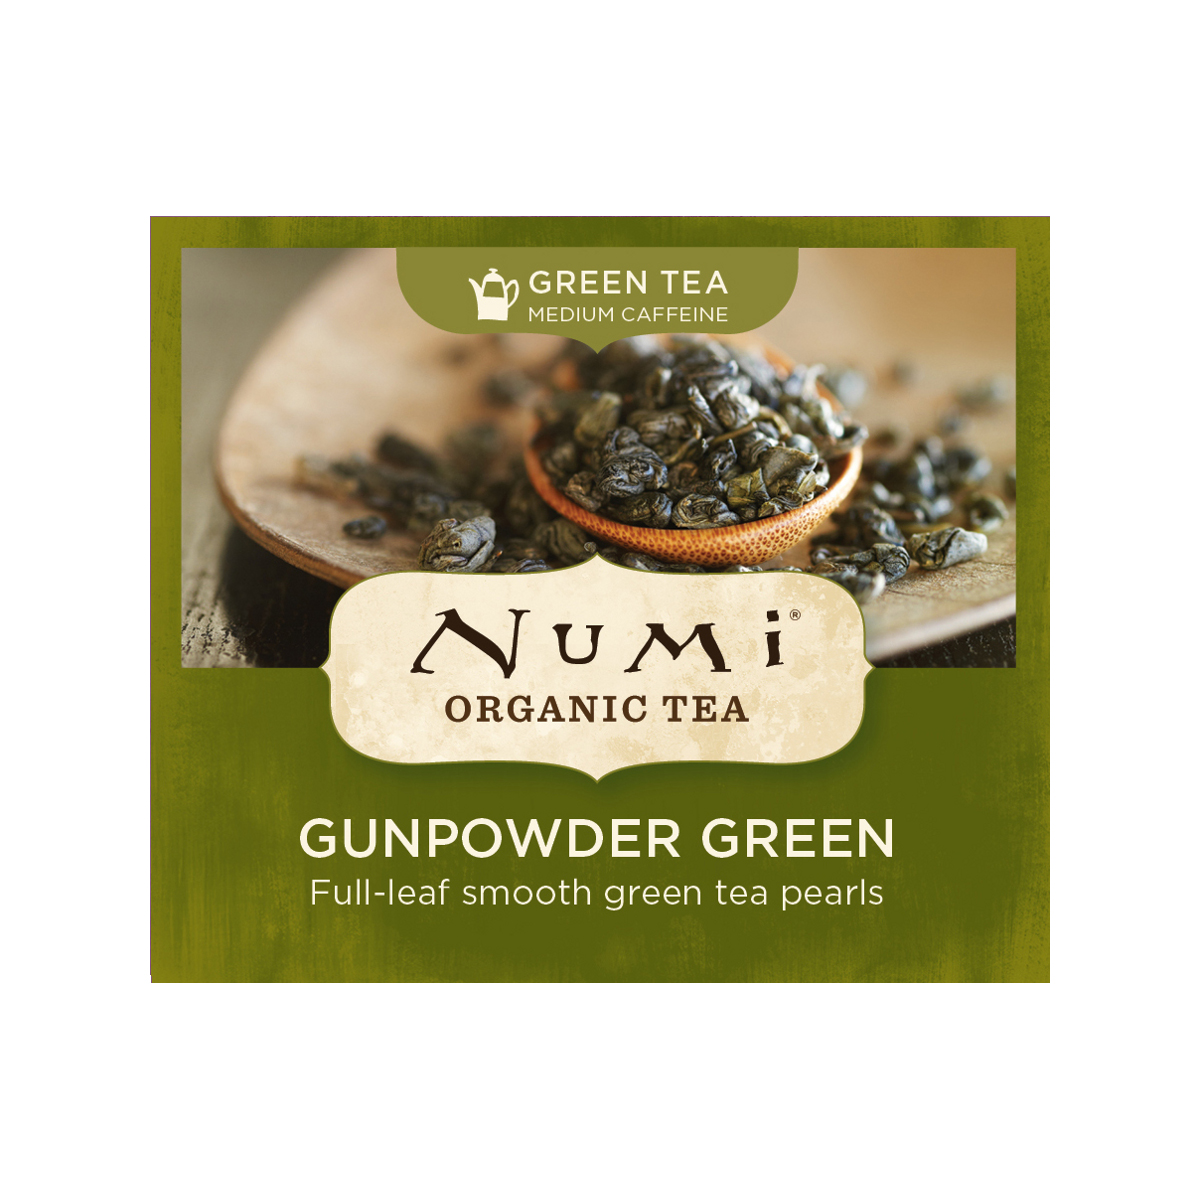 Numi Organic Tea Zelený čaj Gunpowder Green 2 g, 1 ks